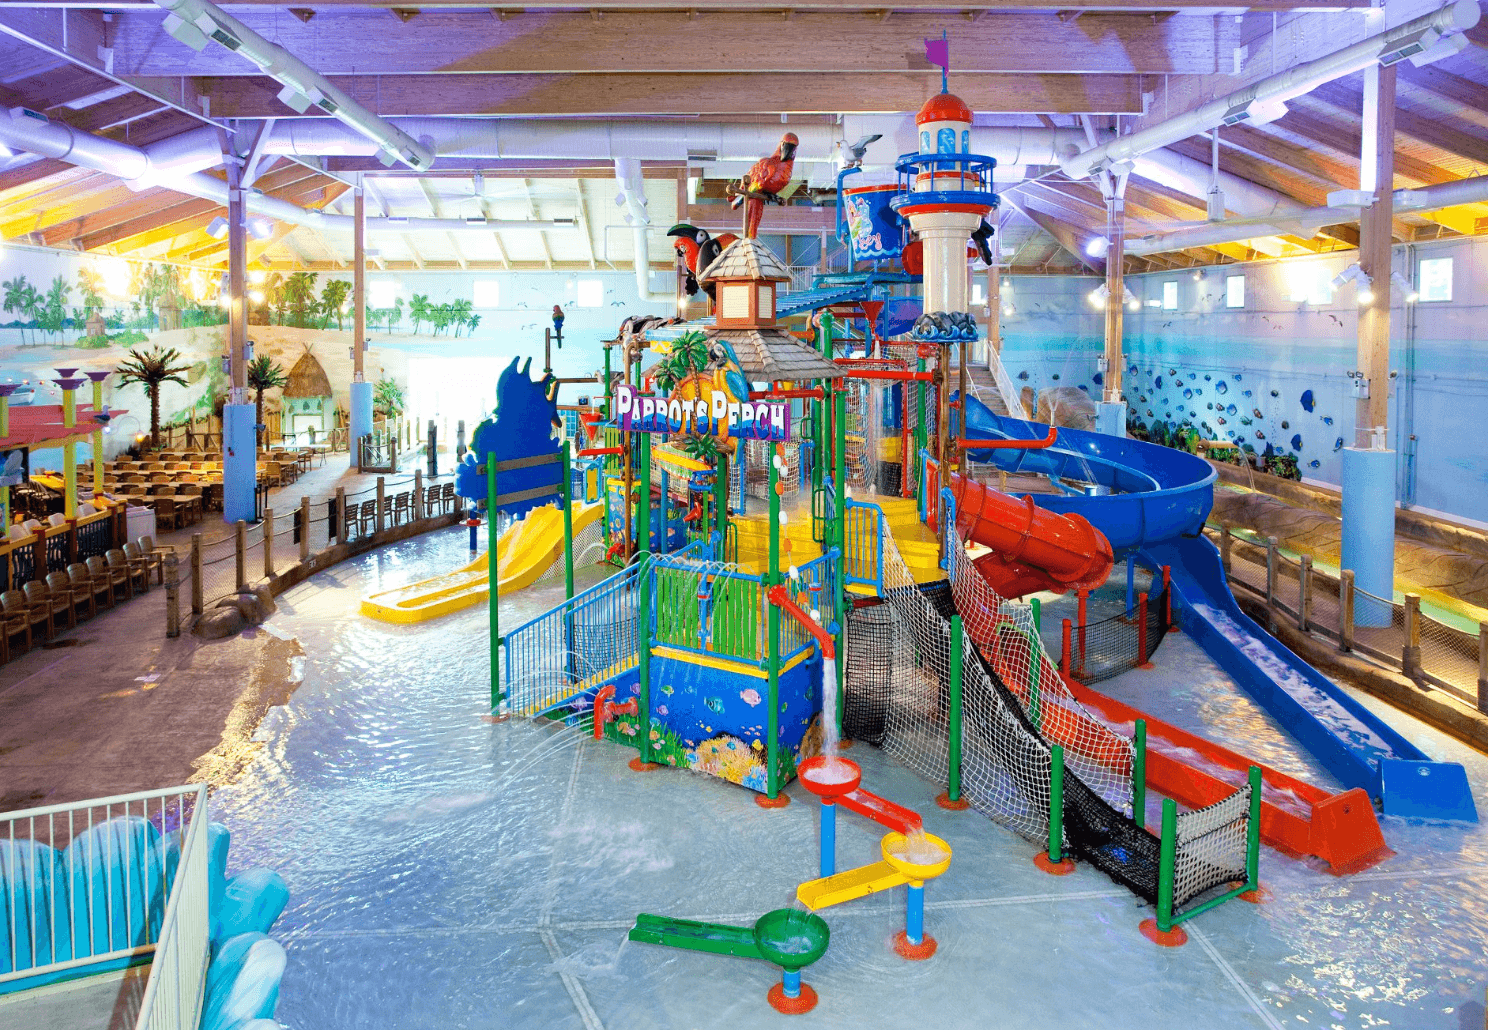 10 Best Indoor Hotel Pools For Kids Hotels With Indoor Pools